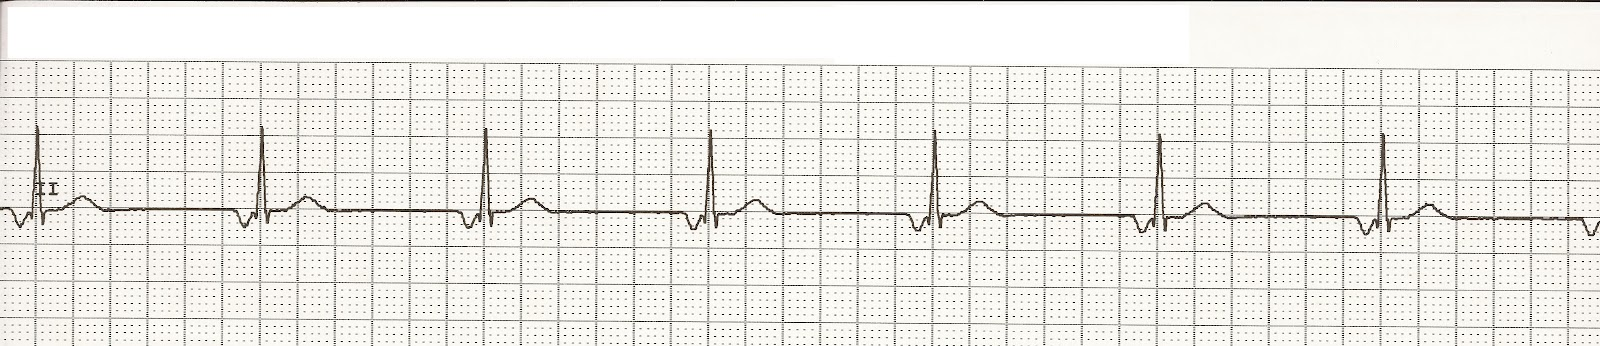 Float Nurse Ekg Rhythm Strips 14 Junctional Rhythms